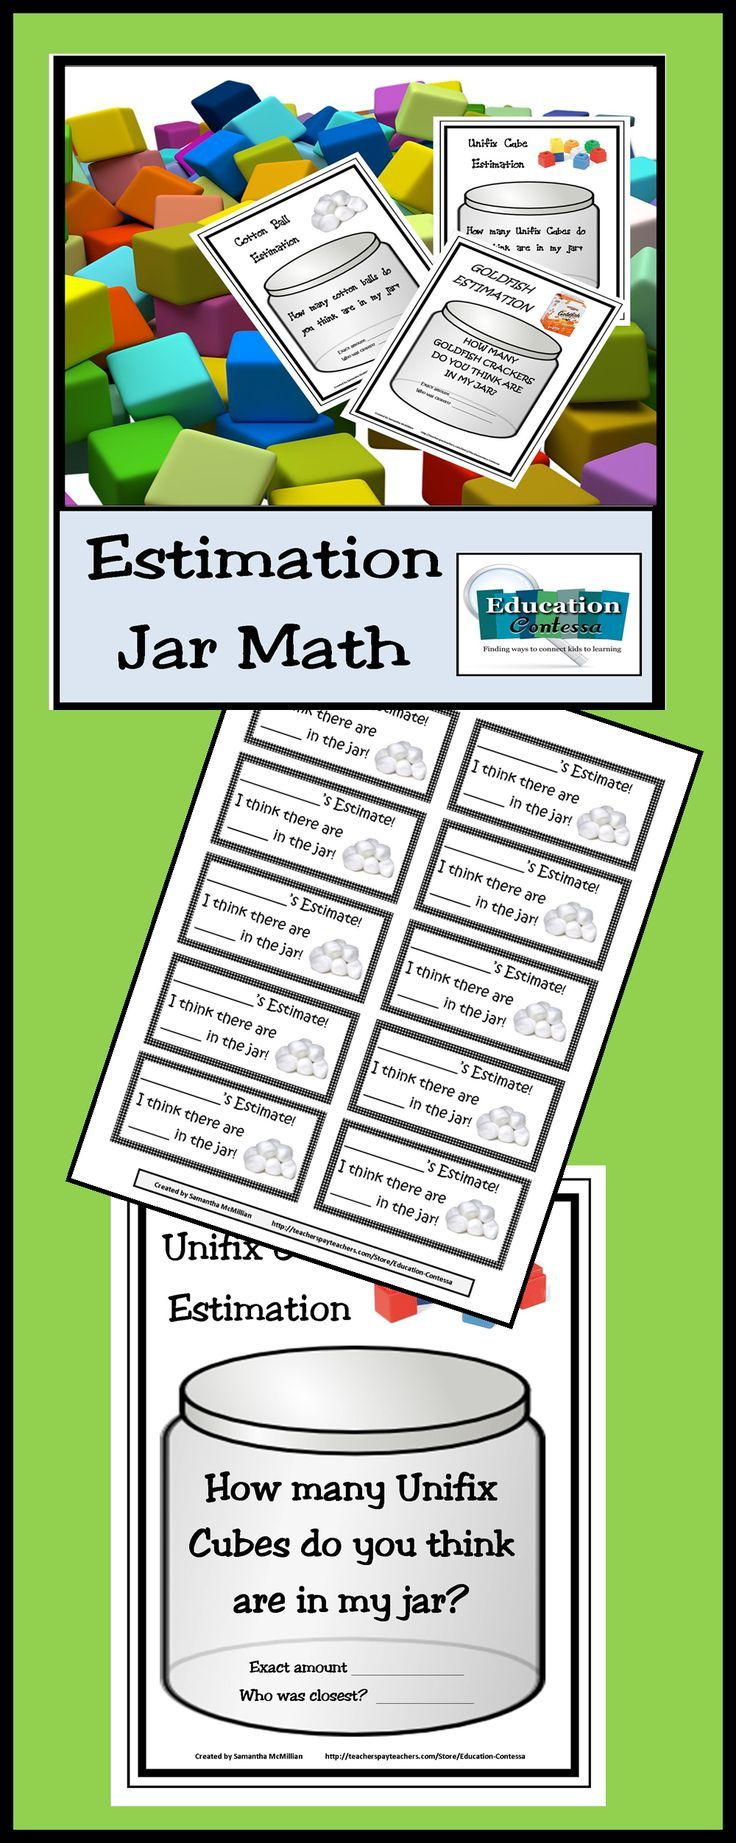 Start your back to school activities off with some class estimation